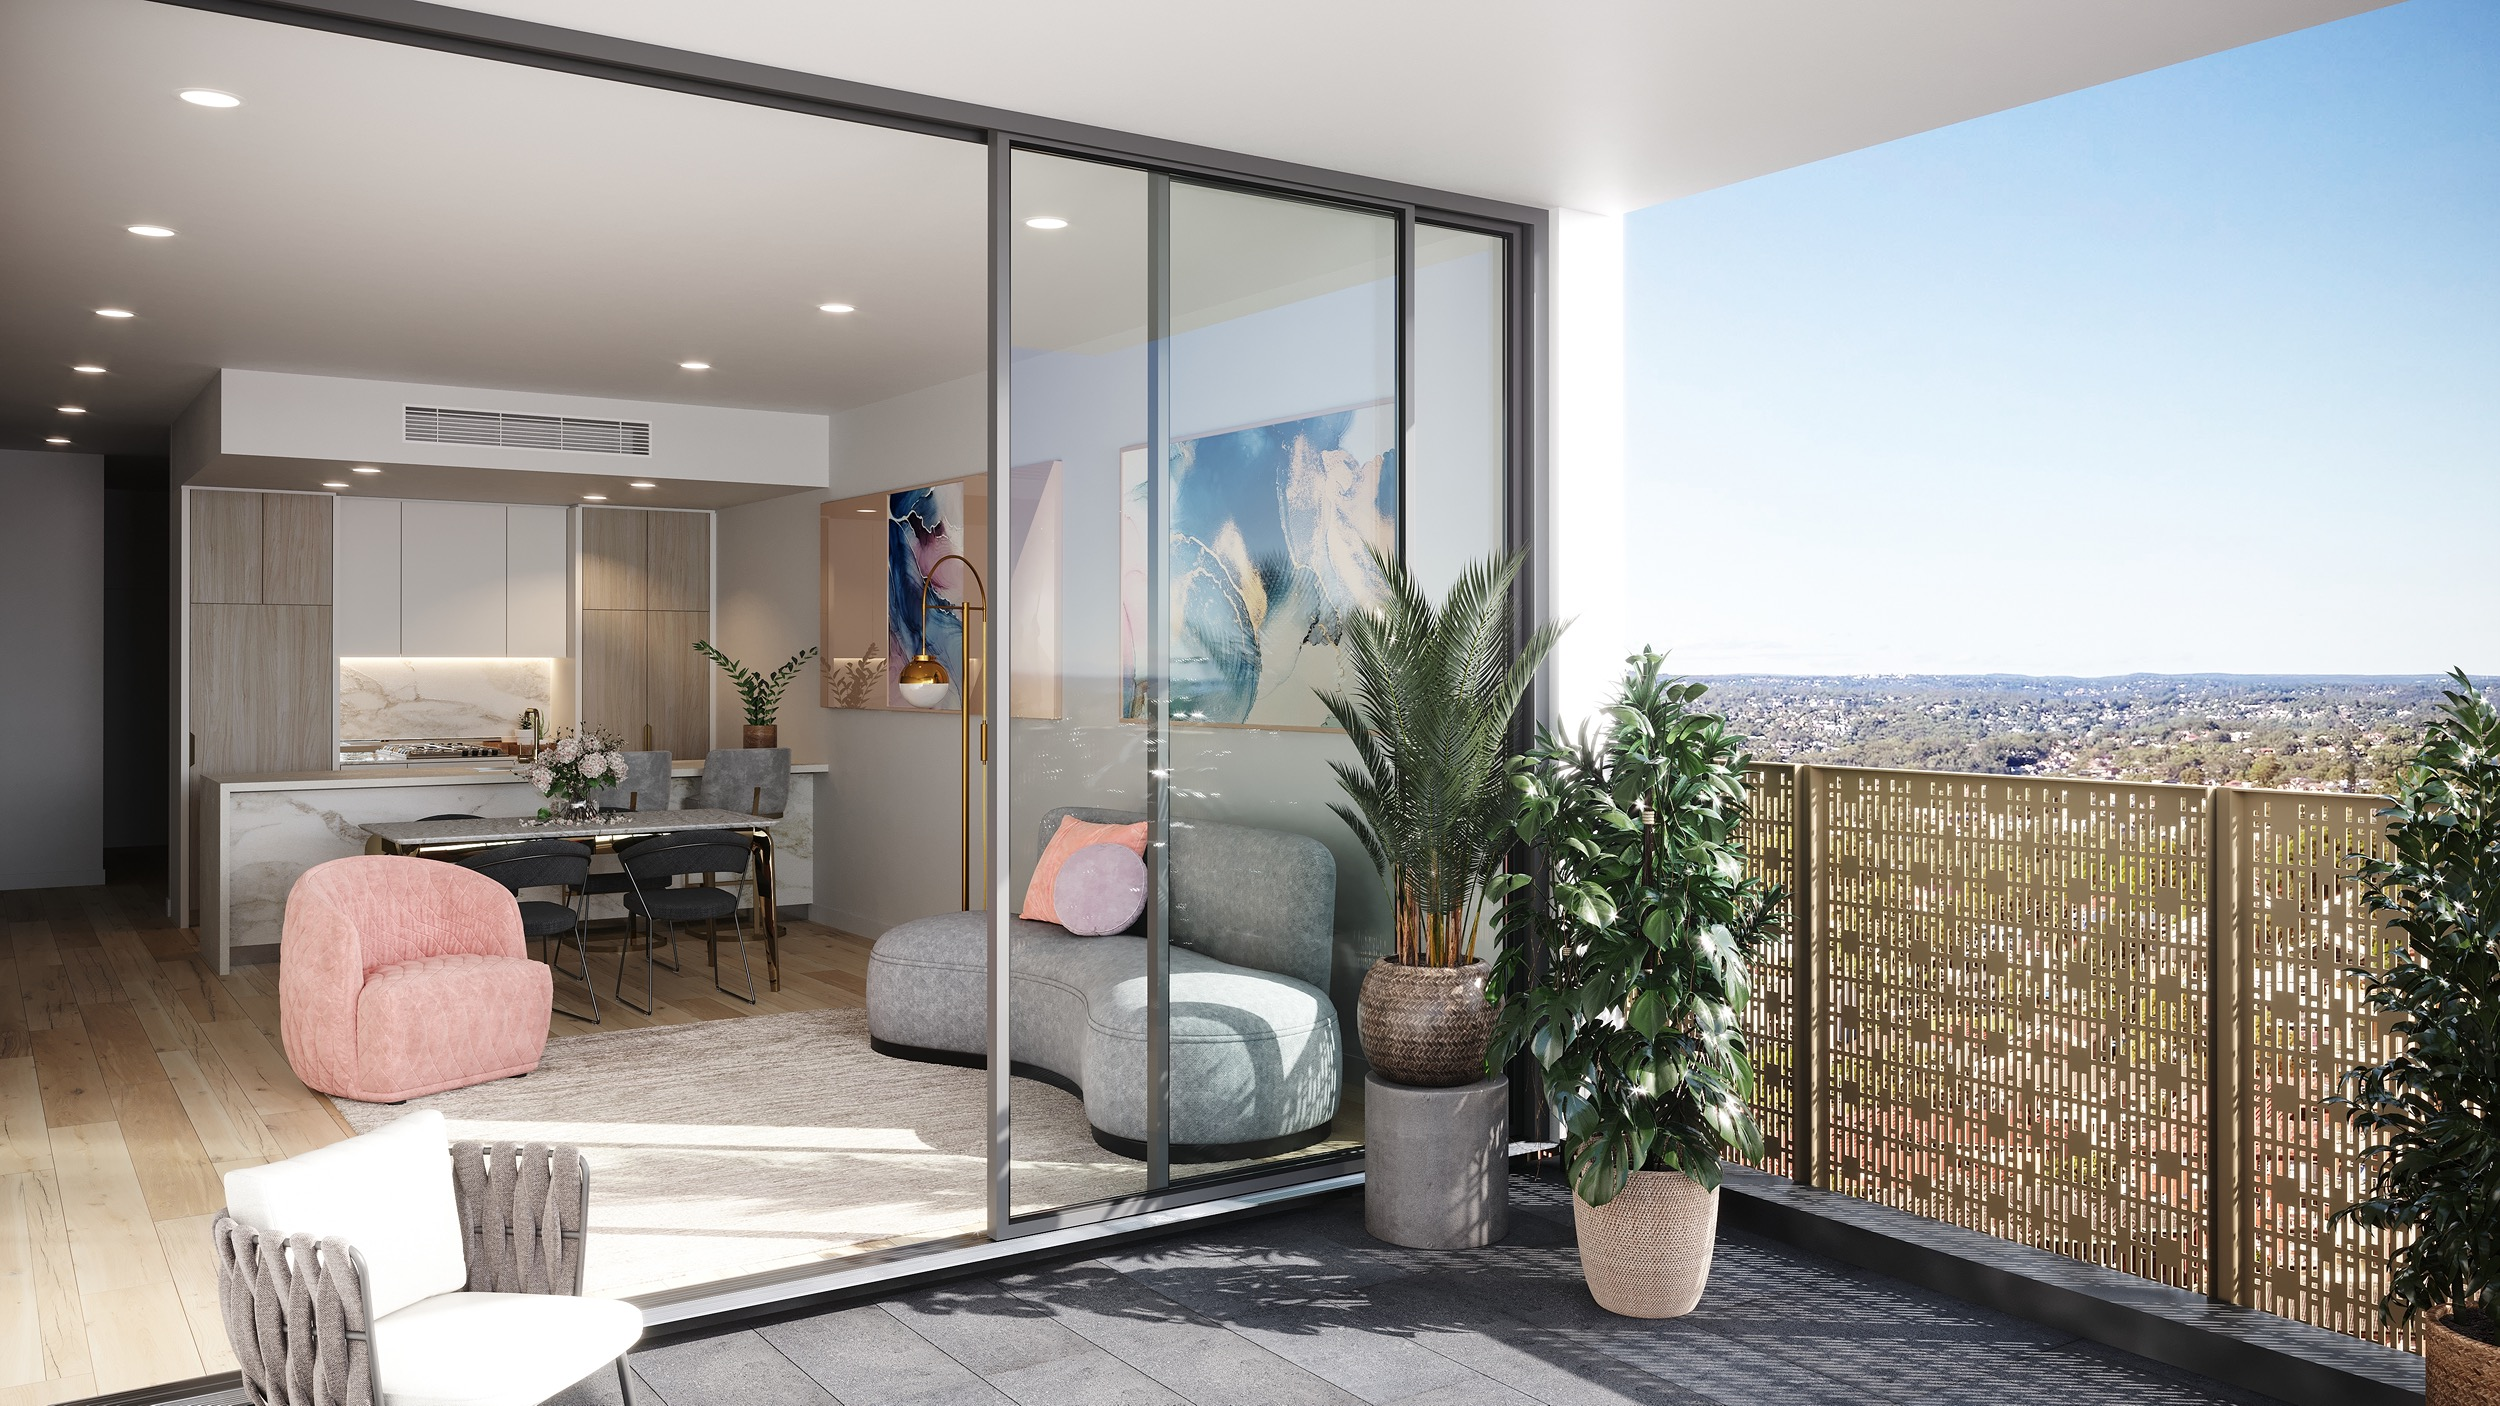 COMING SOON. NEW APARTMENTS IN HURSTVILLE.